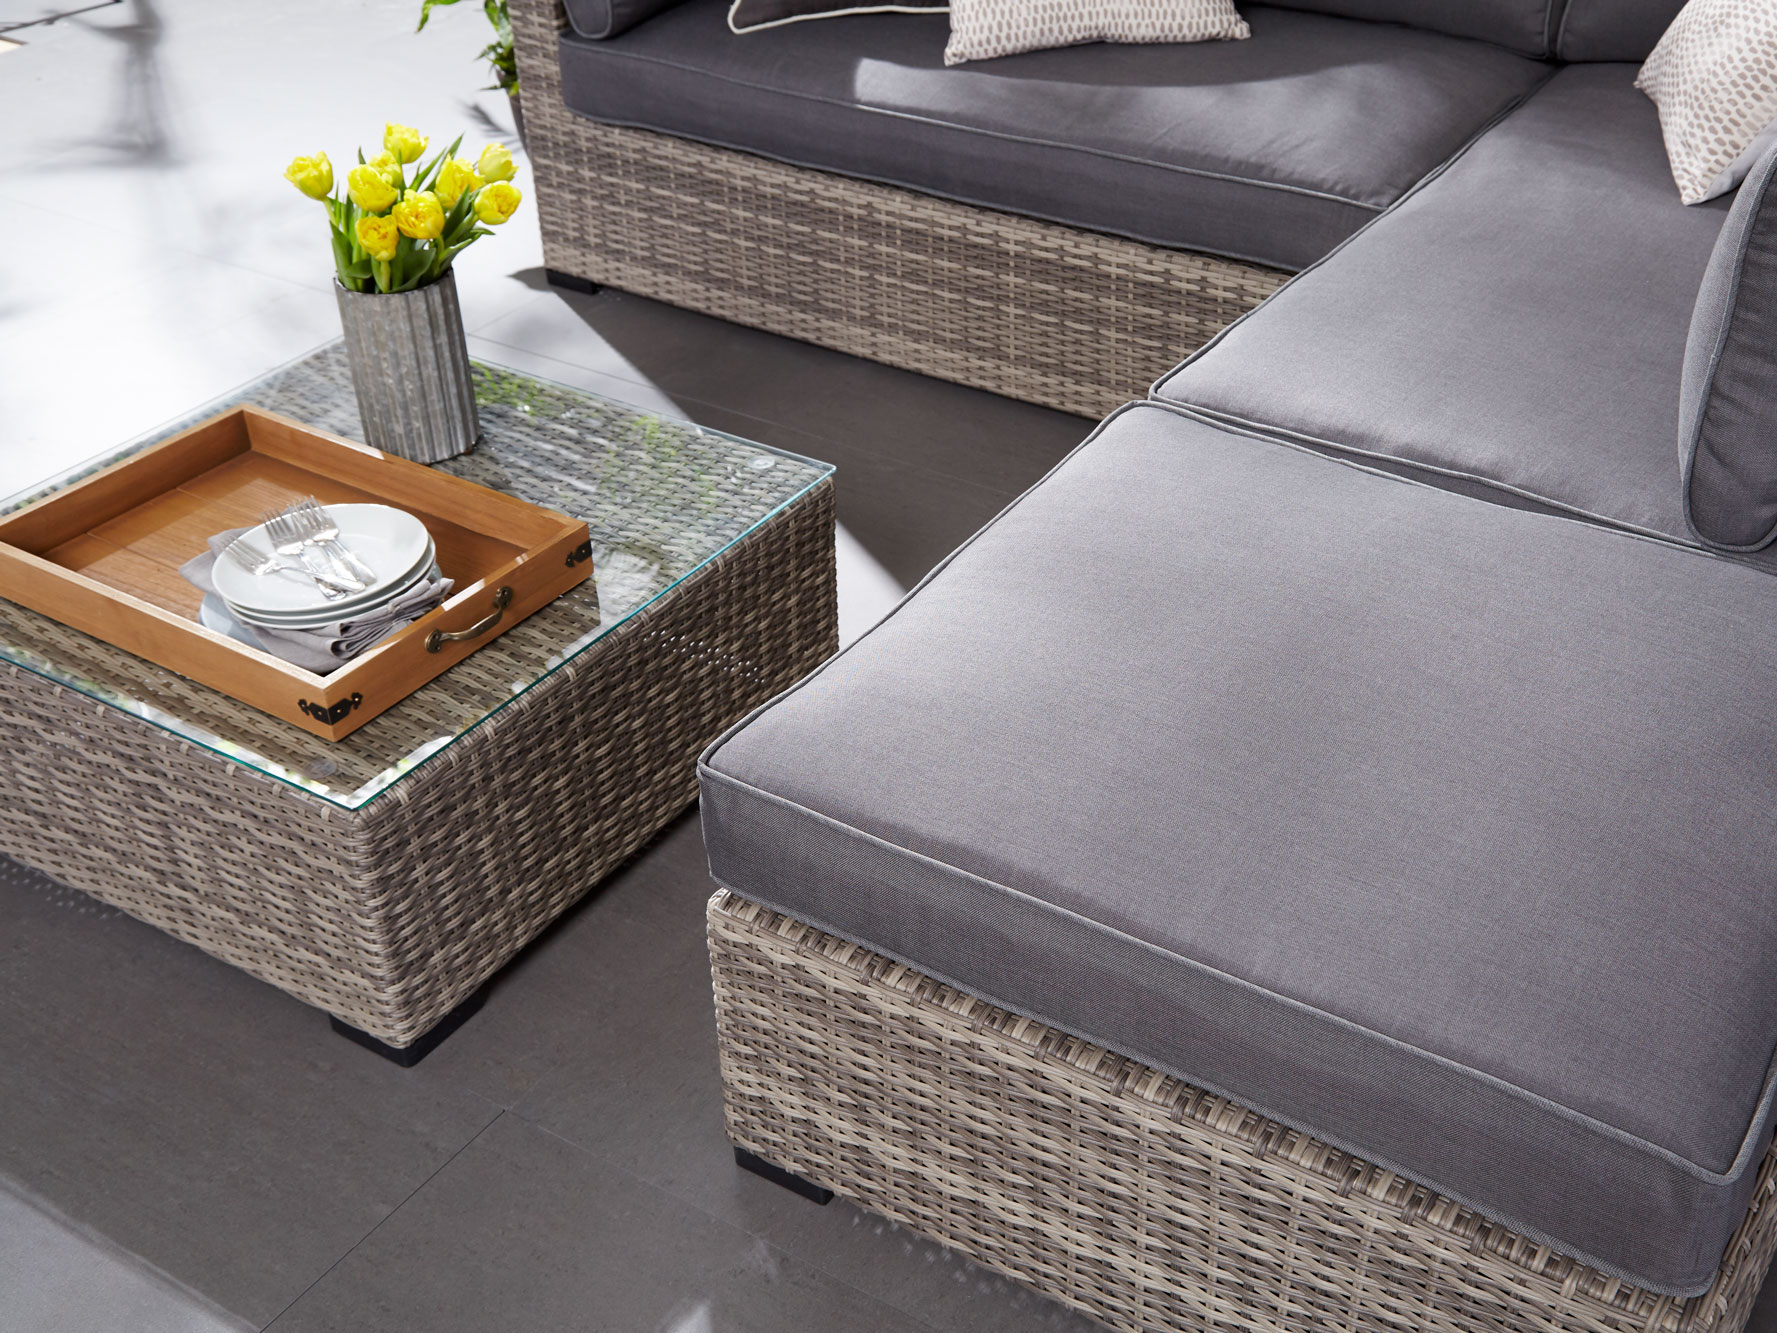 How To Set Up Your Patio Furniture So It Feels Like A Real Part Of Your Home